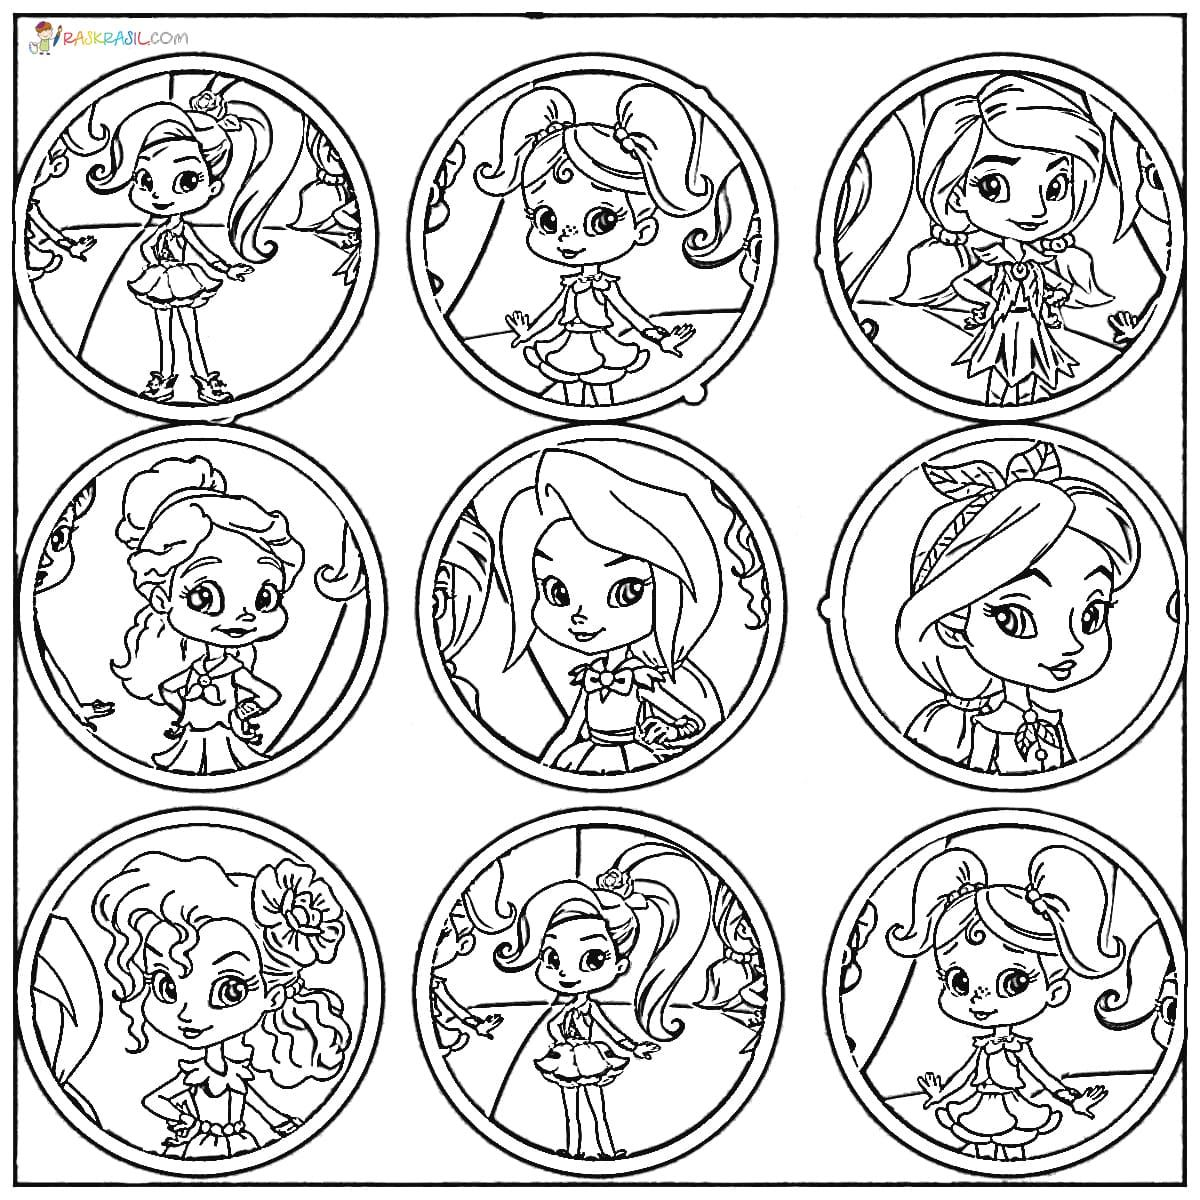 rainbow rangers coloring pages rainbow rangers coloring pages search results dev rangers pages rainbow coloring